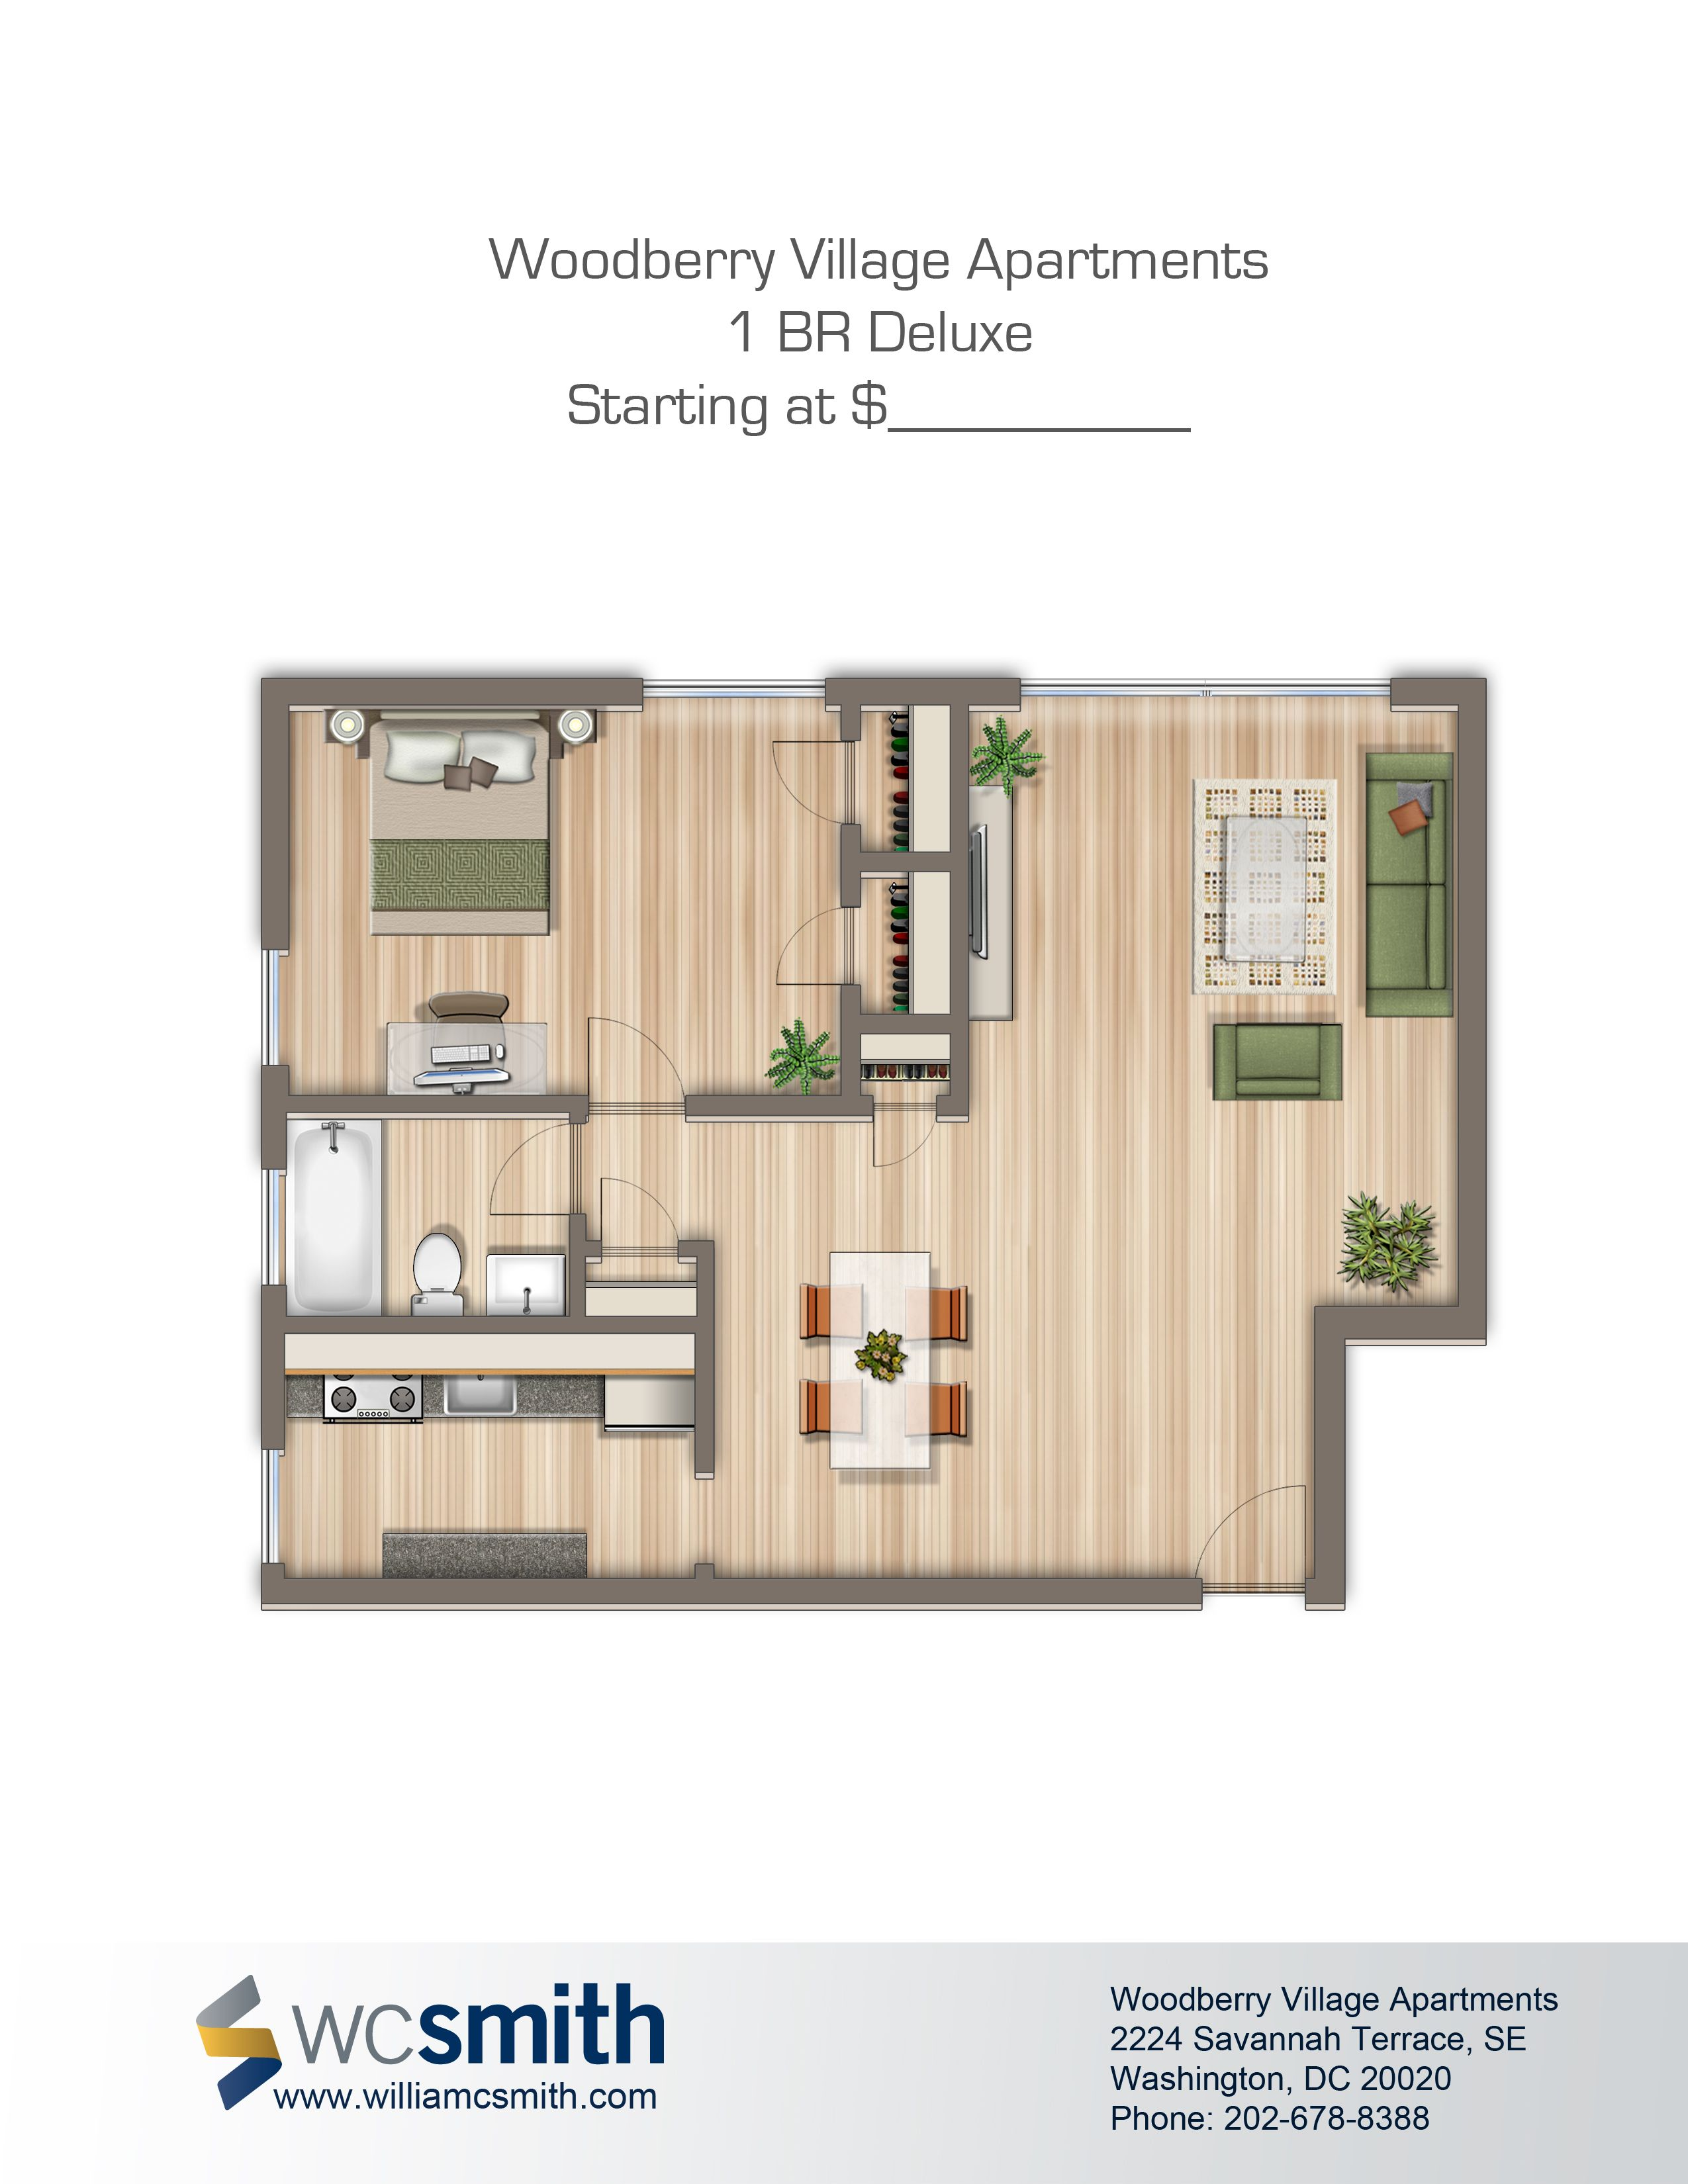 Woodberry Village Apartments Tiny house design